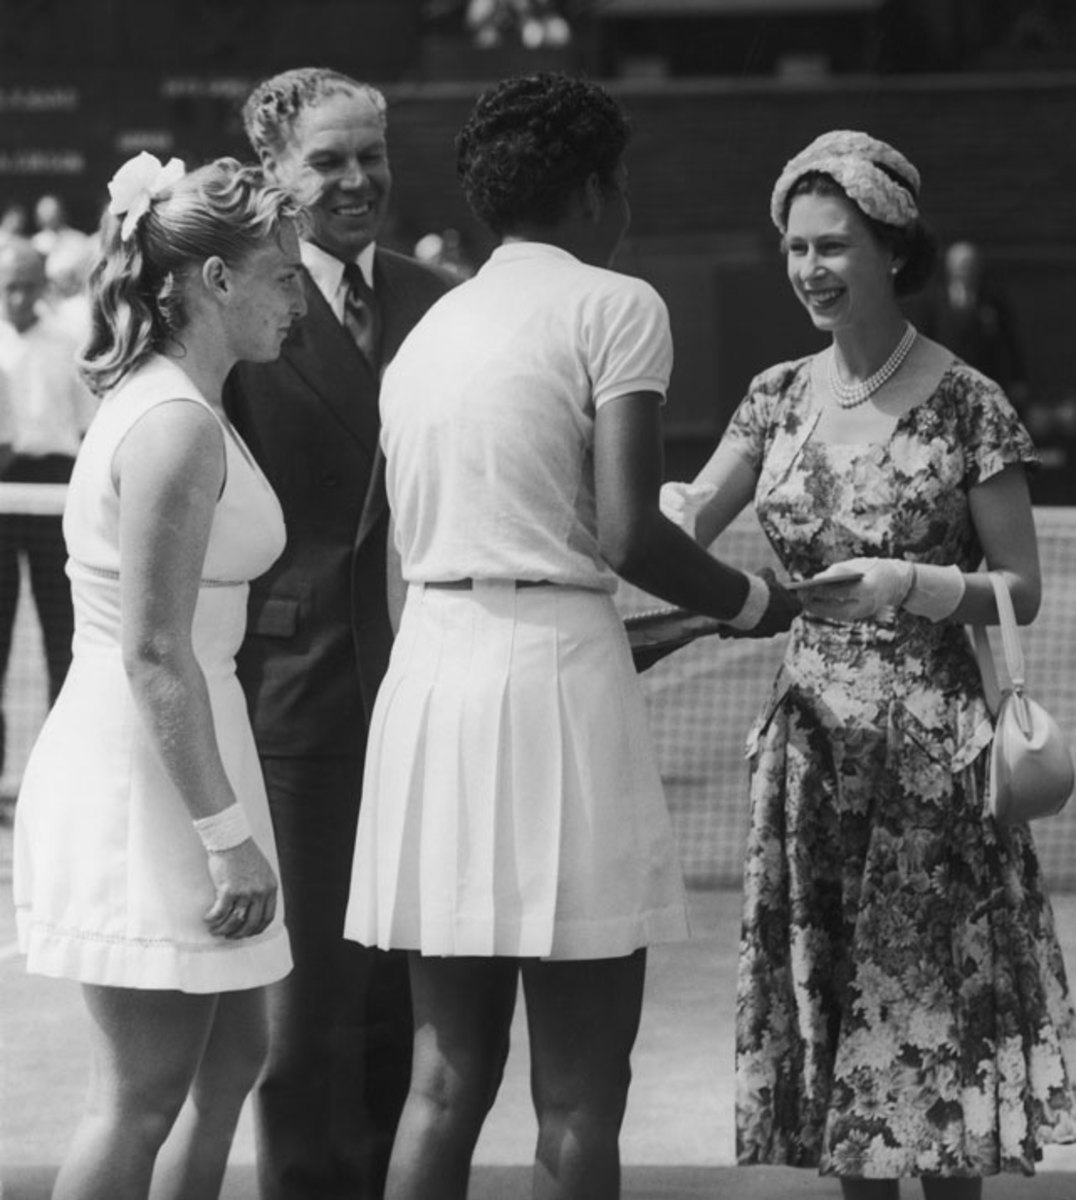 Queen Elizabeth II, Althea Gibson and Darlene Hard